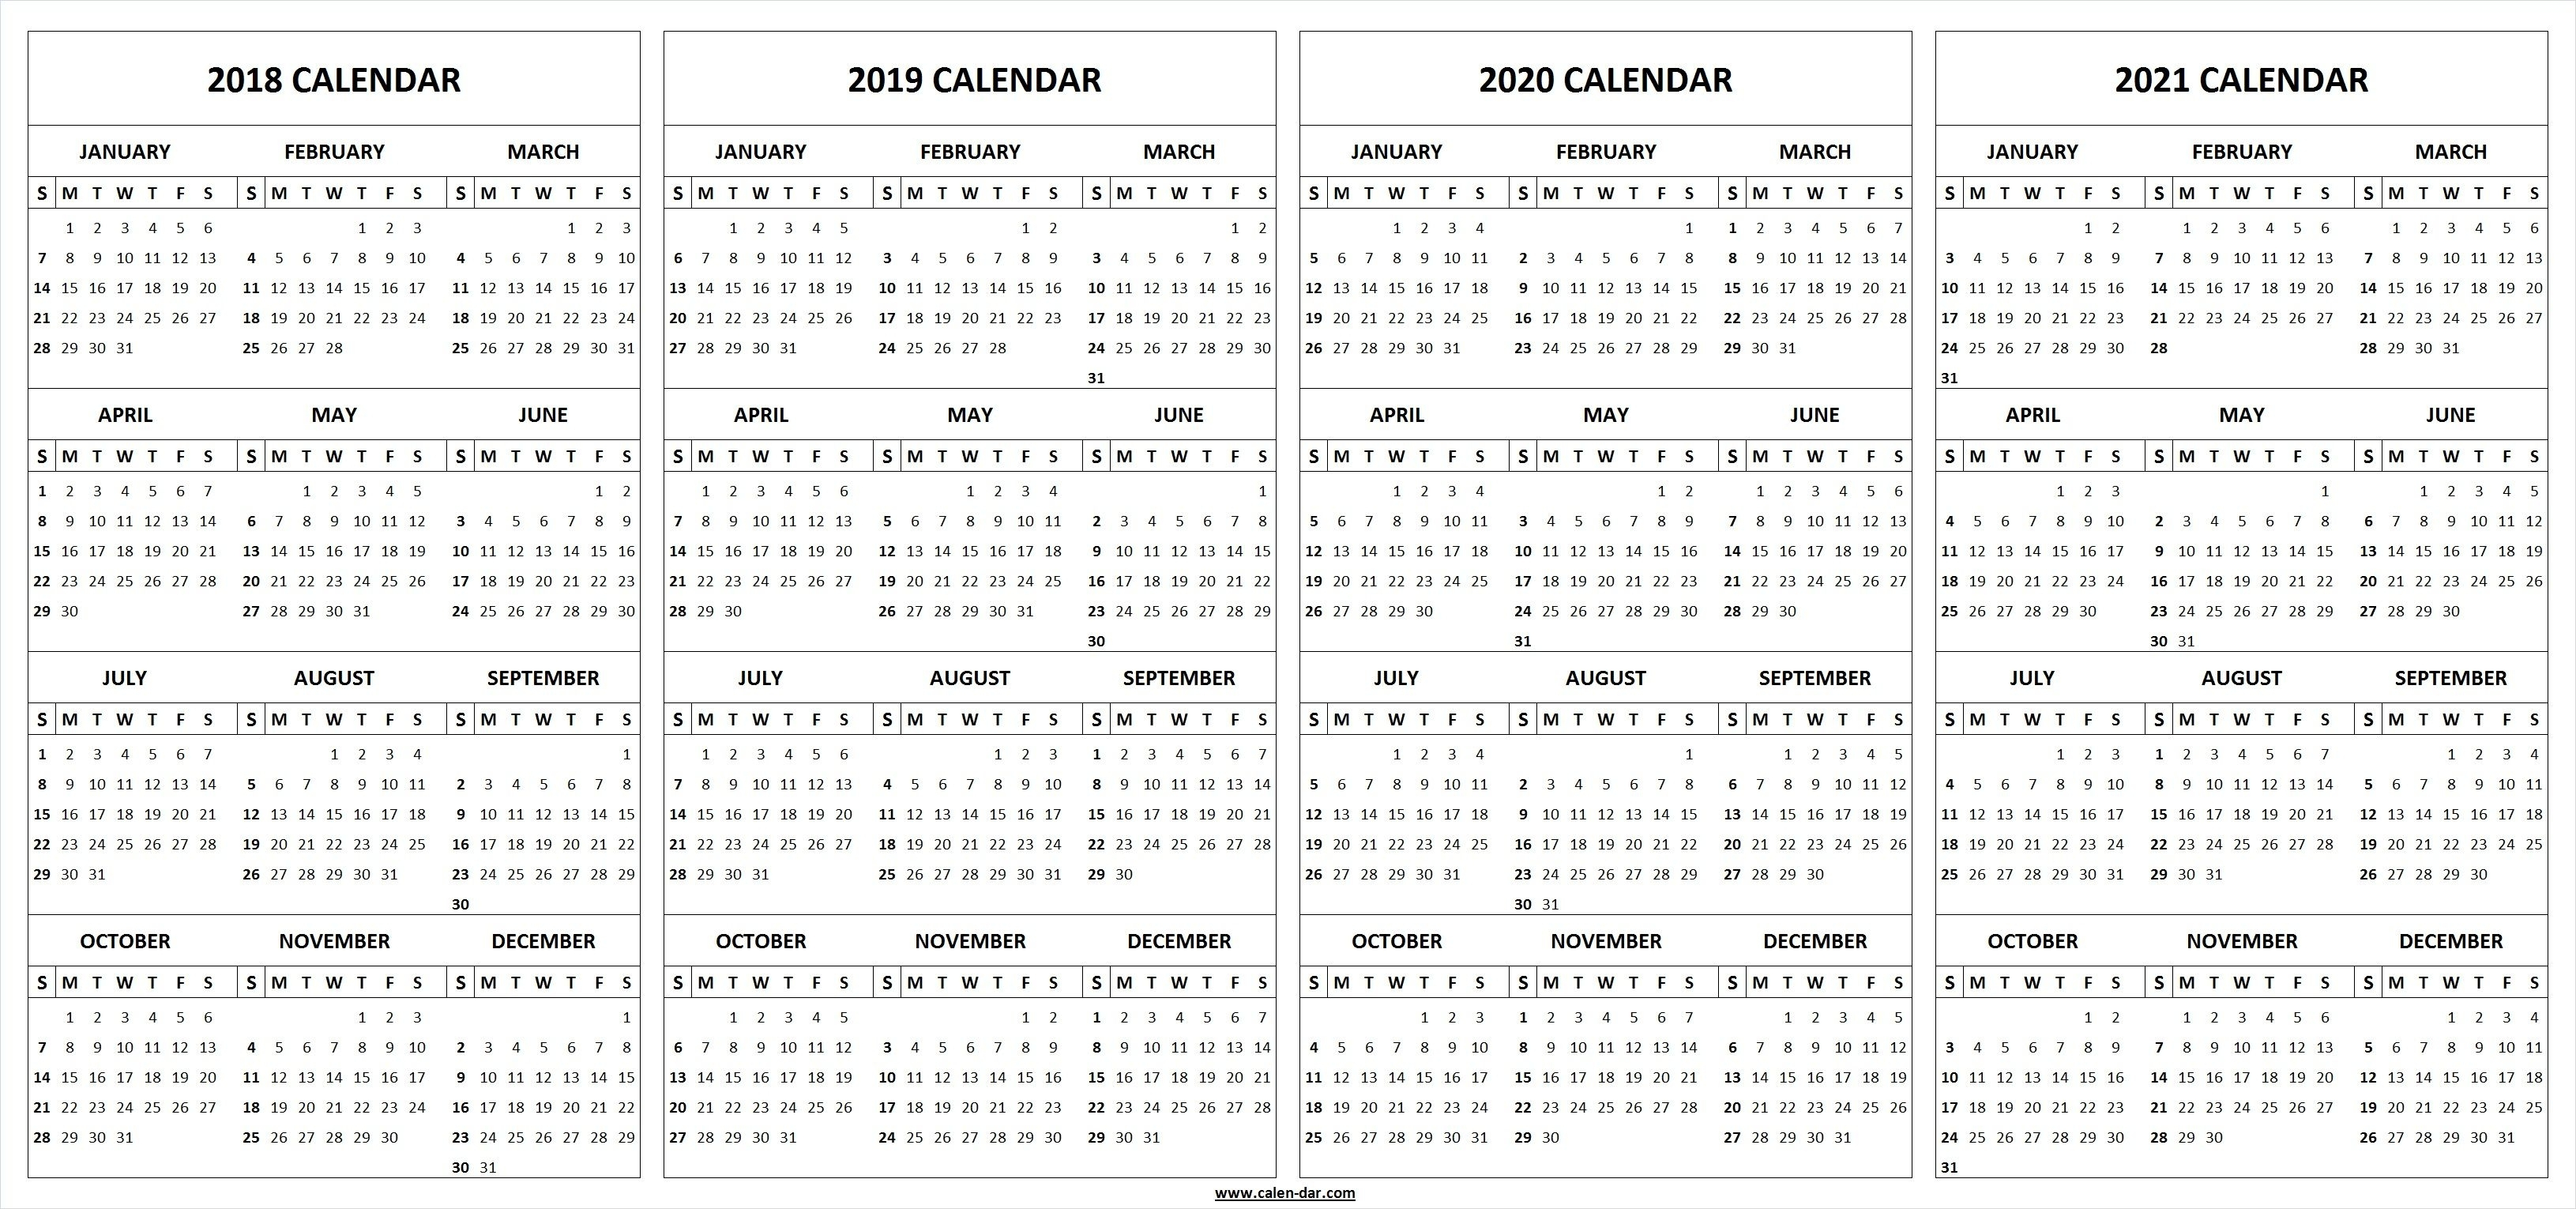 4 Four Year 2018 2019 2020 2021 Calendar Printable Template in Calendars 2019 2020 2021